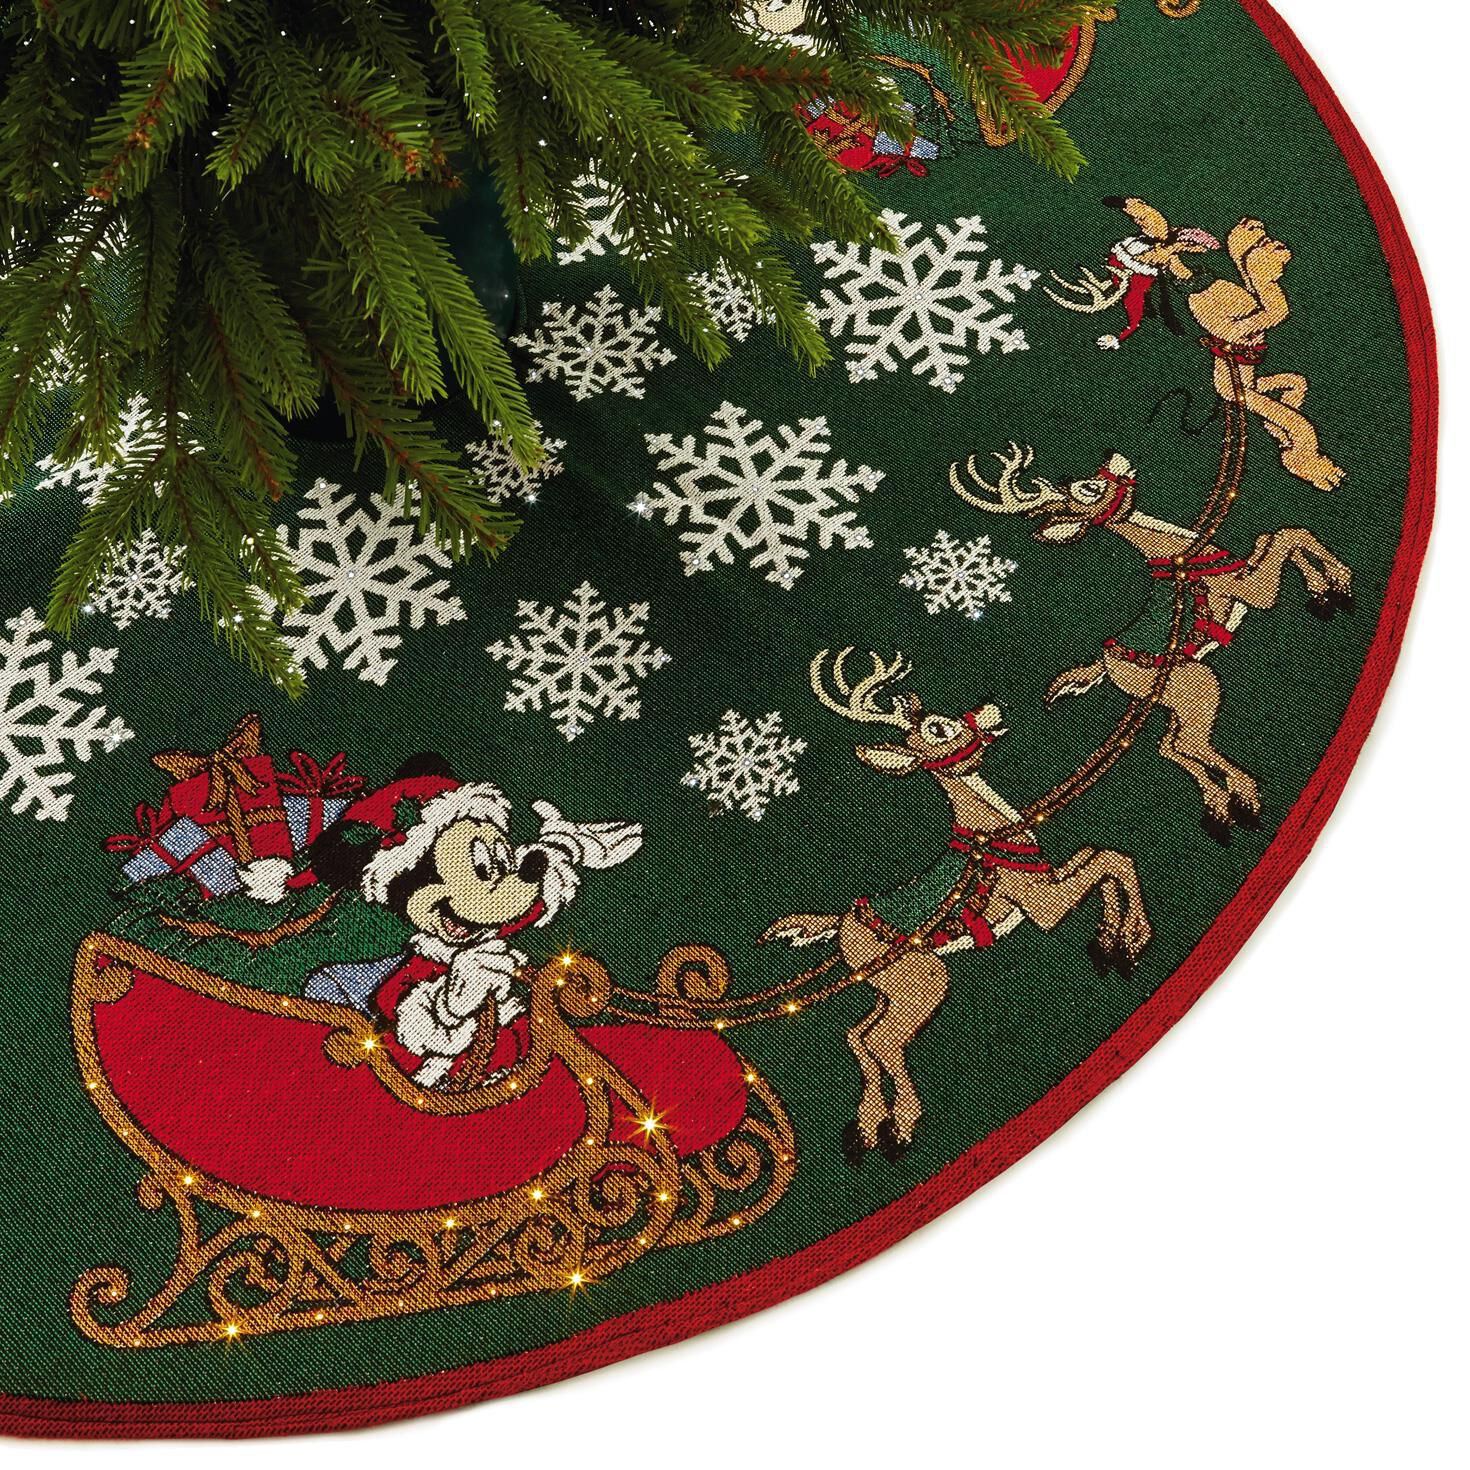 Tree Skirt With Light Mickey Mouse Oh, What Fun!